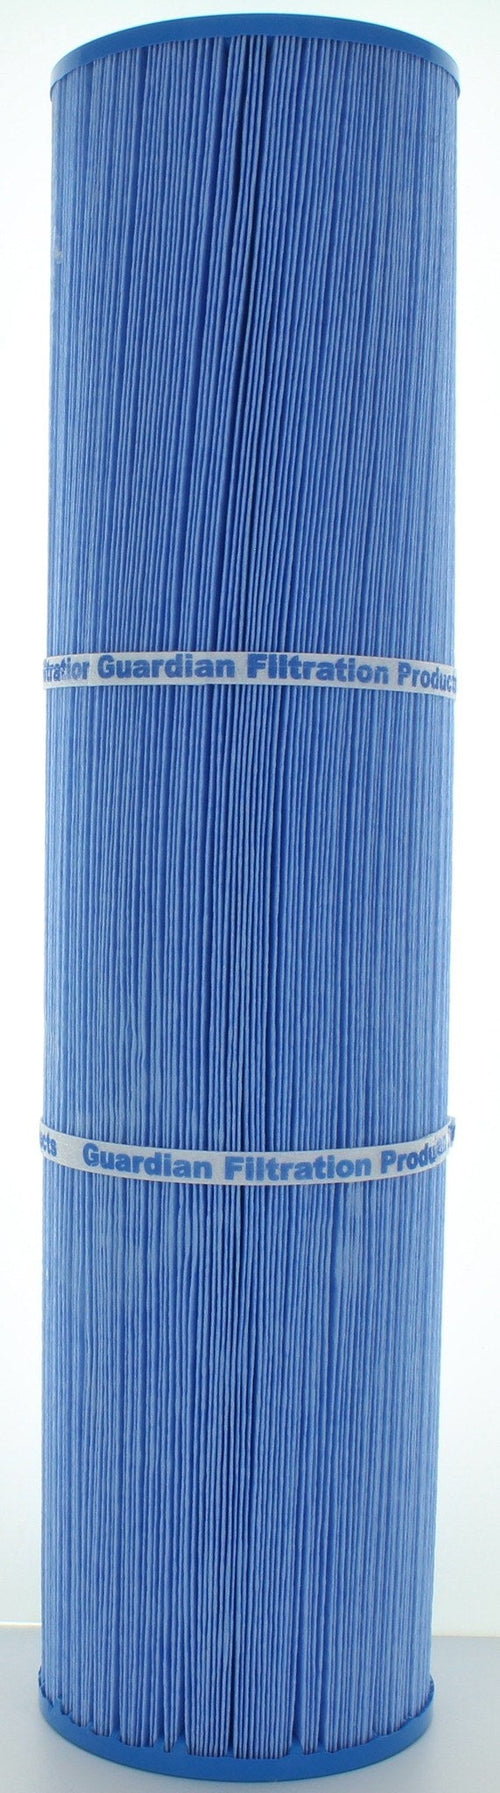 Replaces Unicel C-4975RA, Pleatco PRB75-M • Antimicrobial Pool & Spa Filter Cartridge-Filter Cartridge-FilterDeal.com